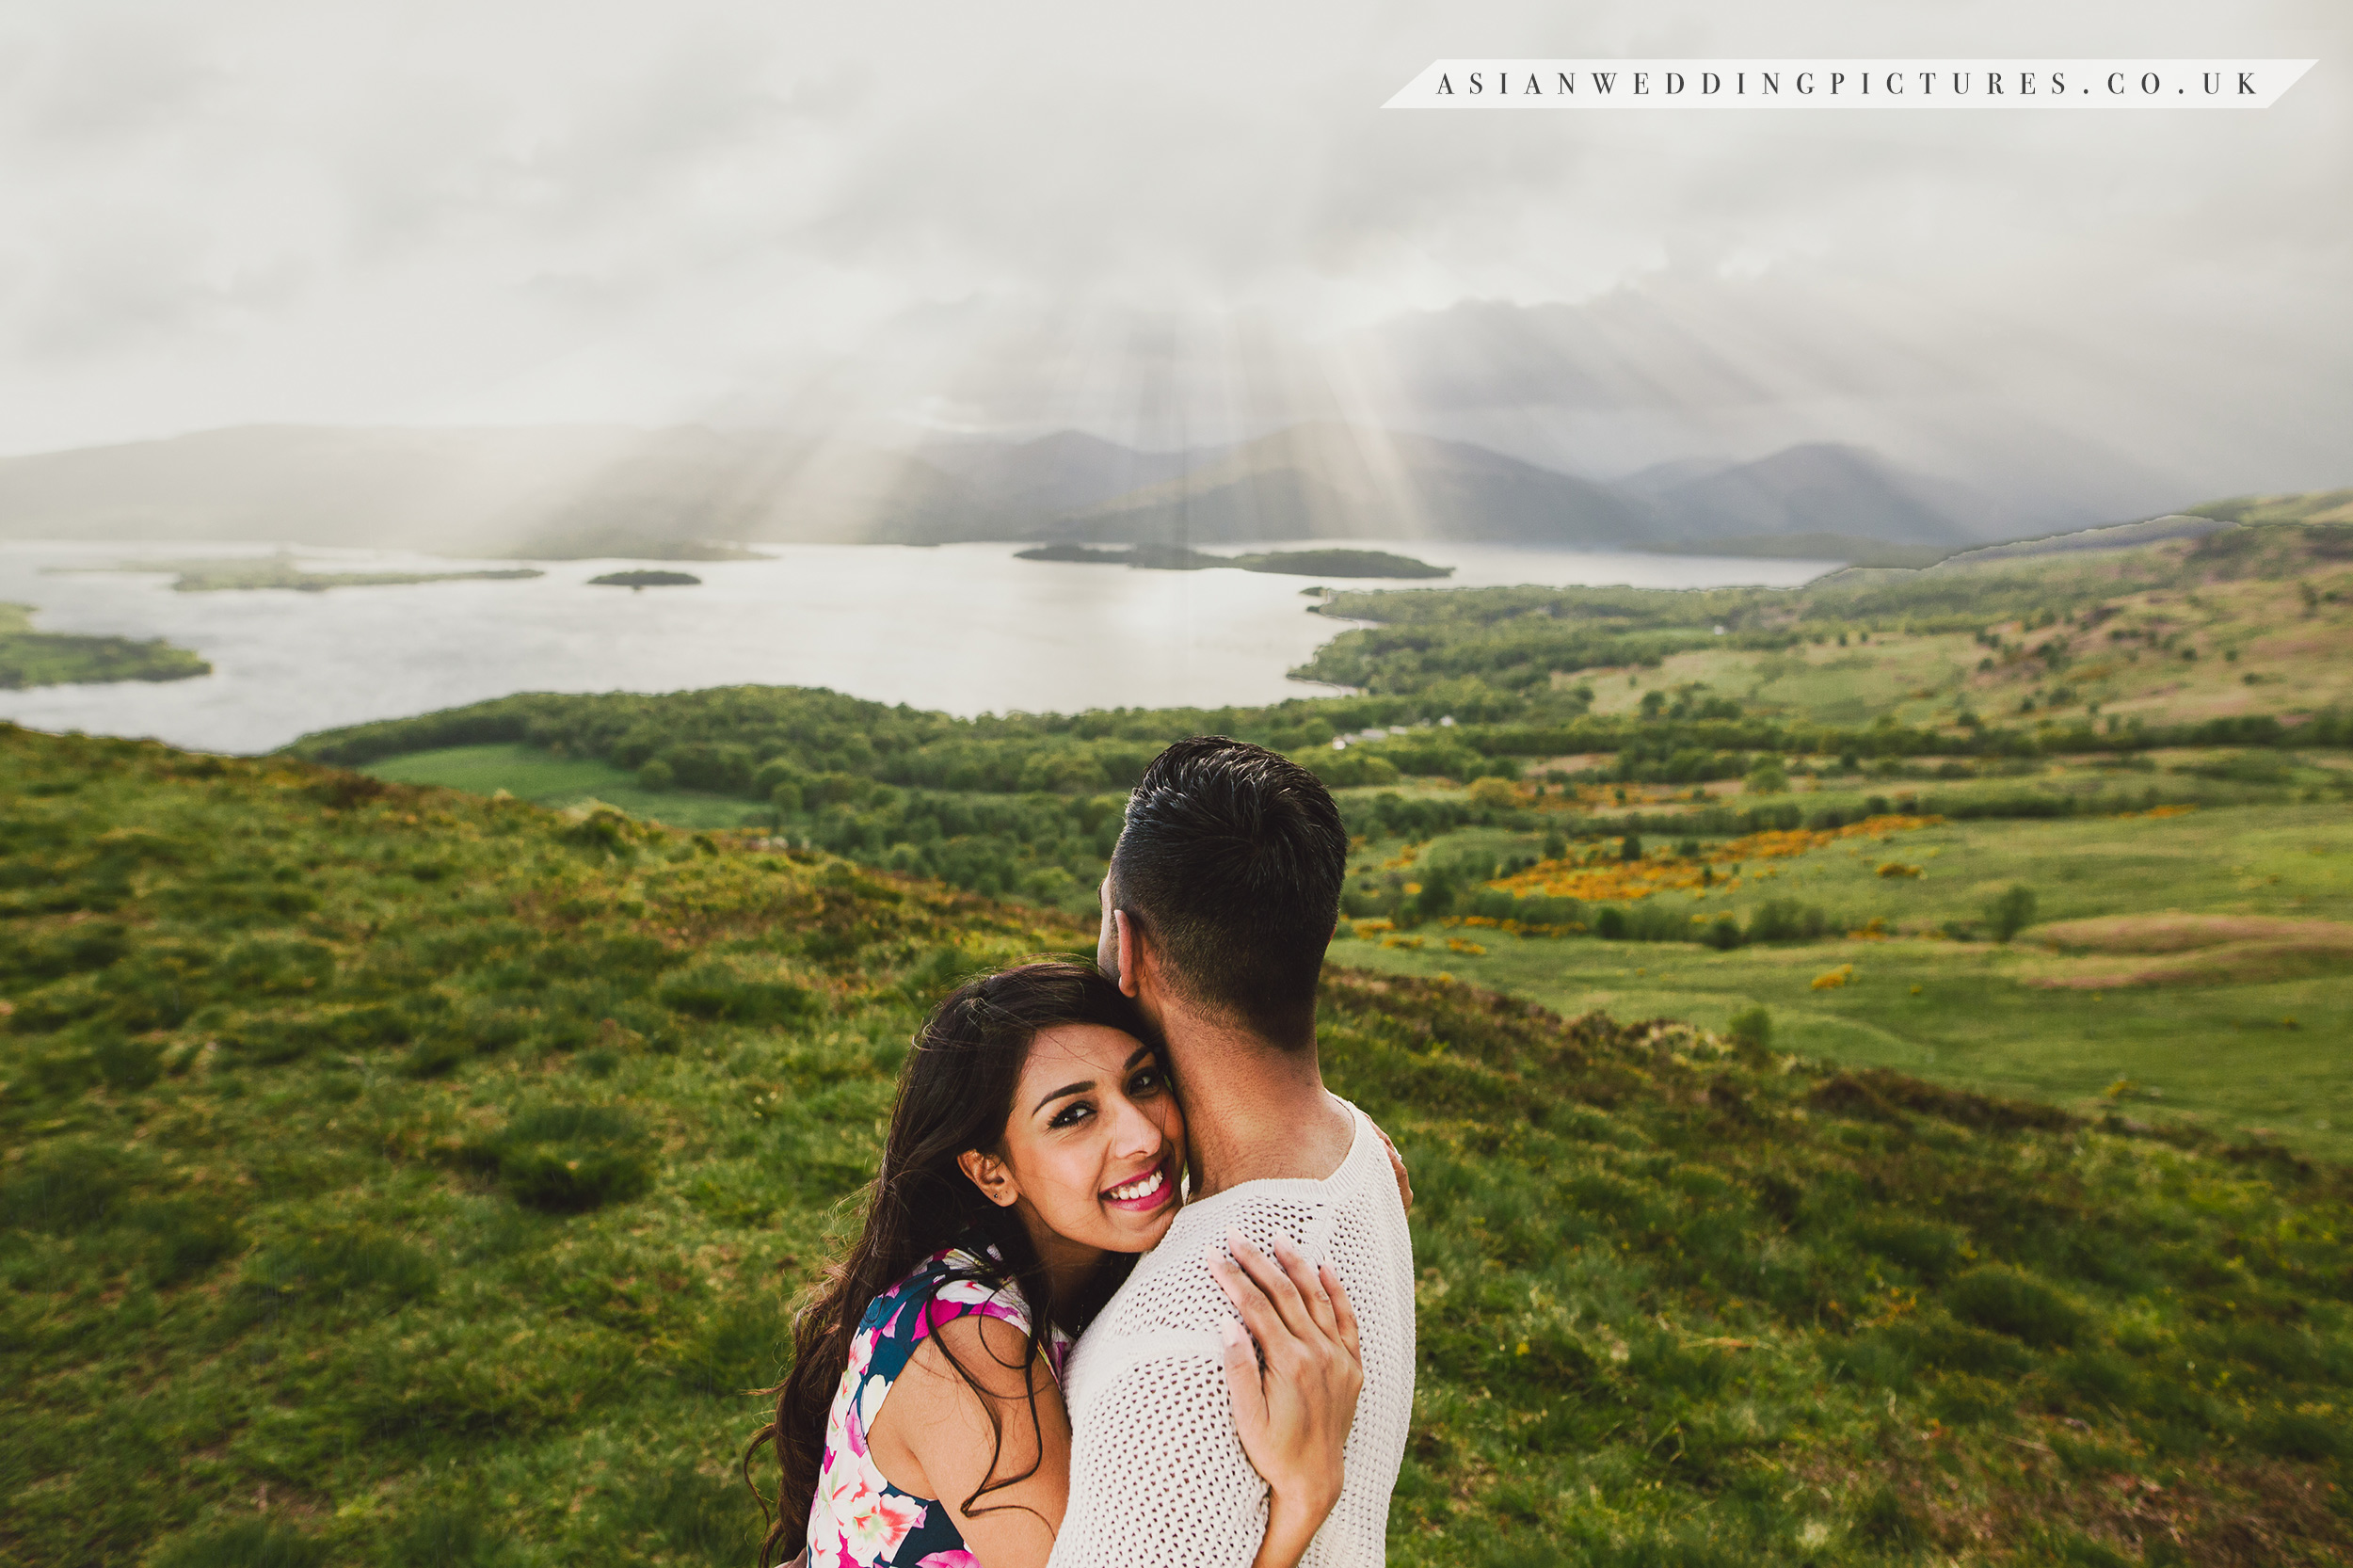 It's your wedding, your story. We don't get in the way and we never take the focus away from you - Asian Wedding Pictures